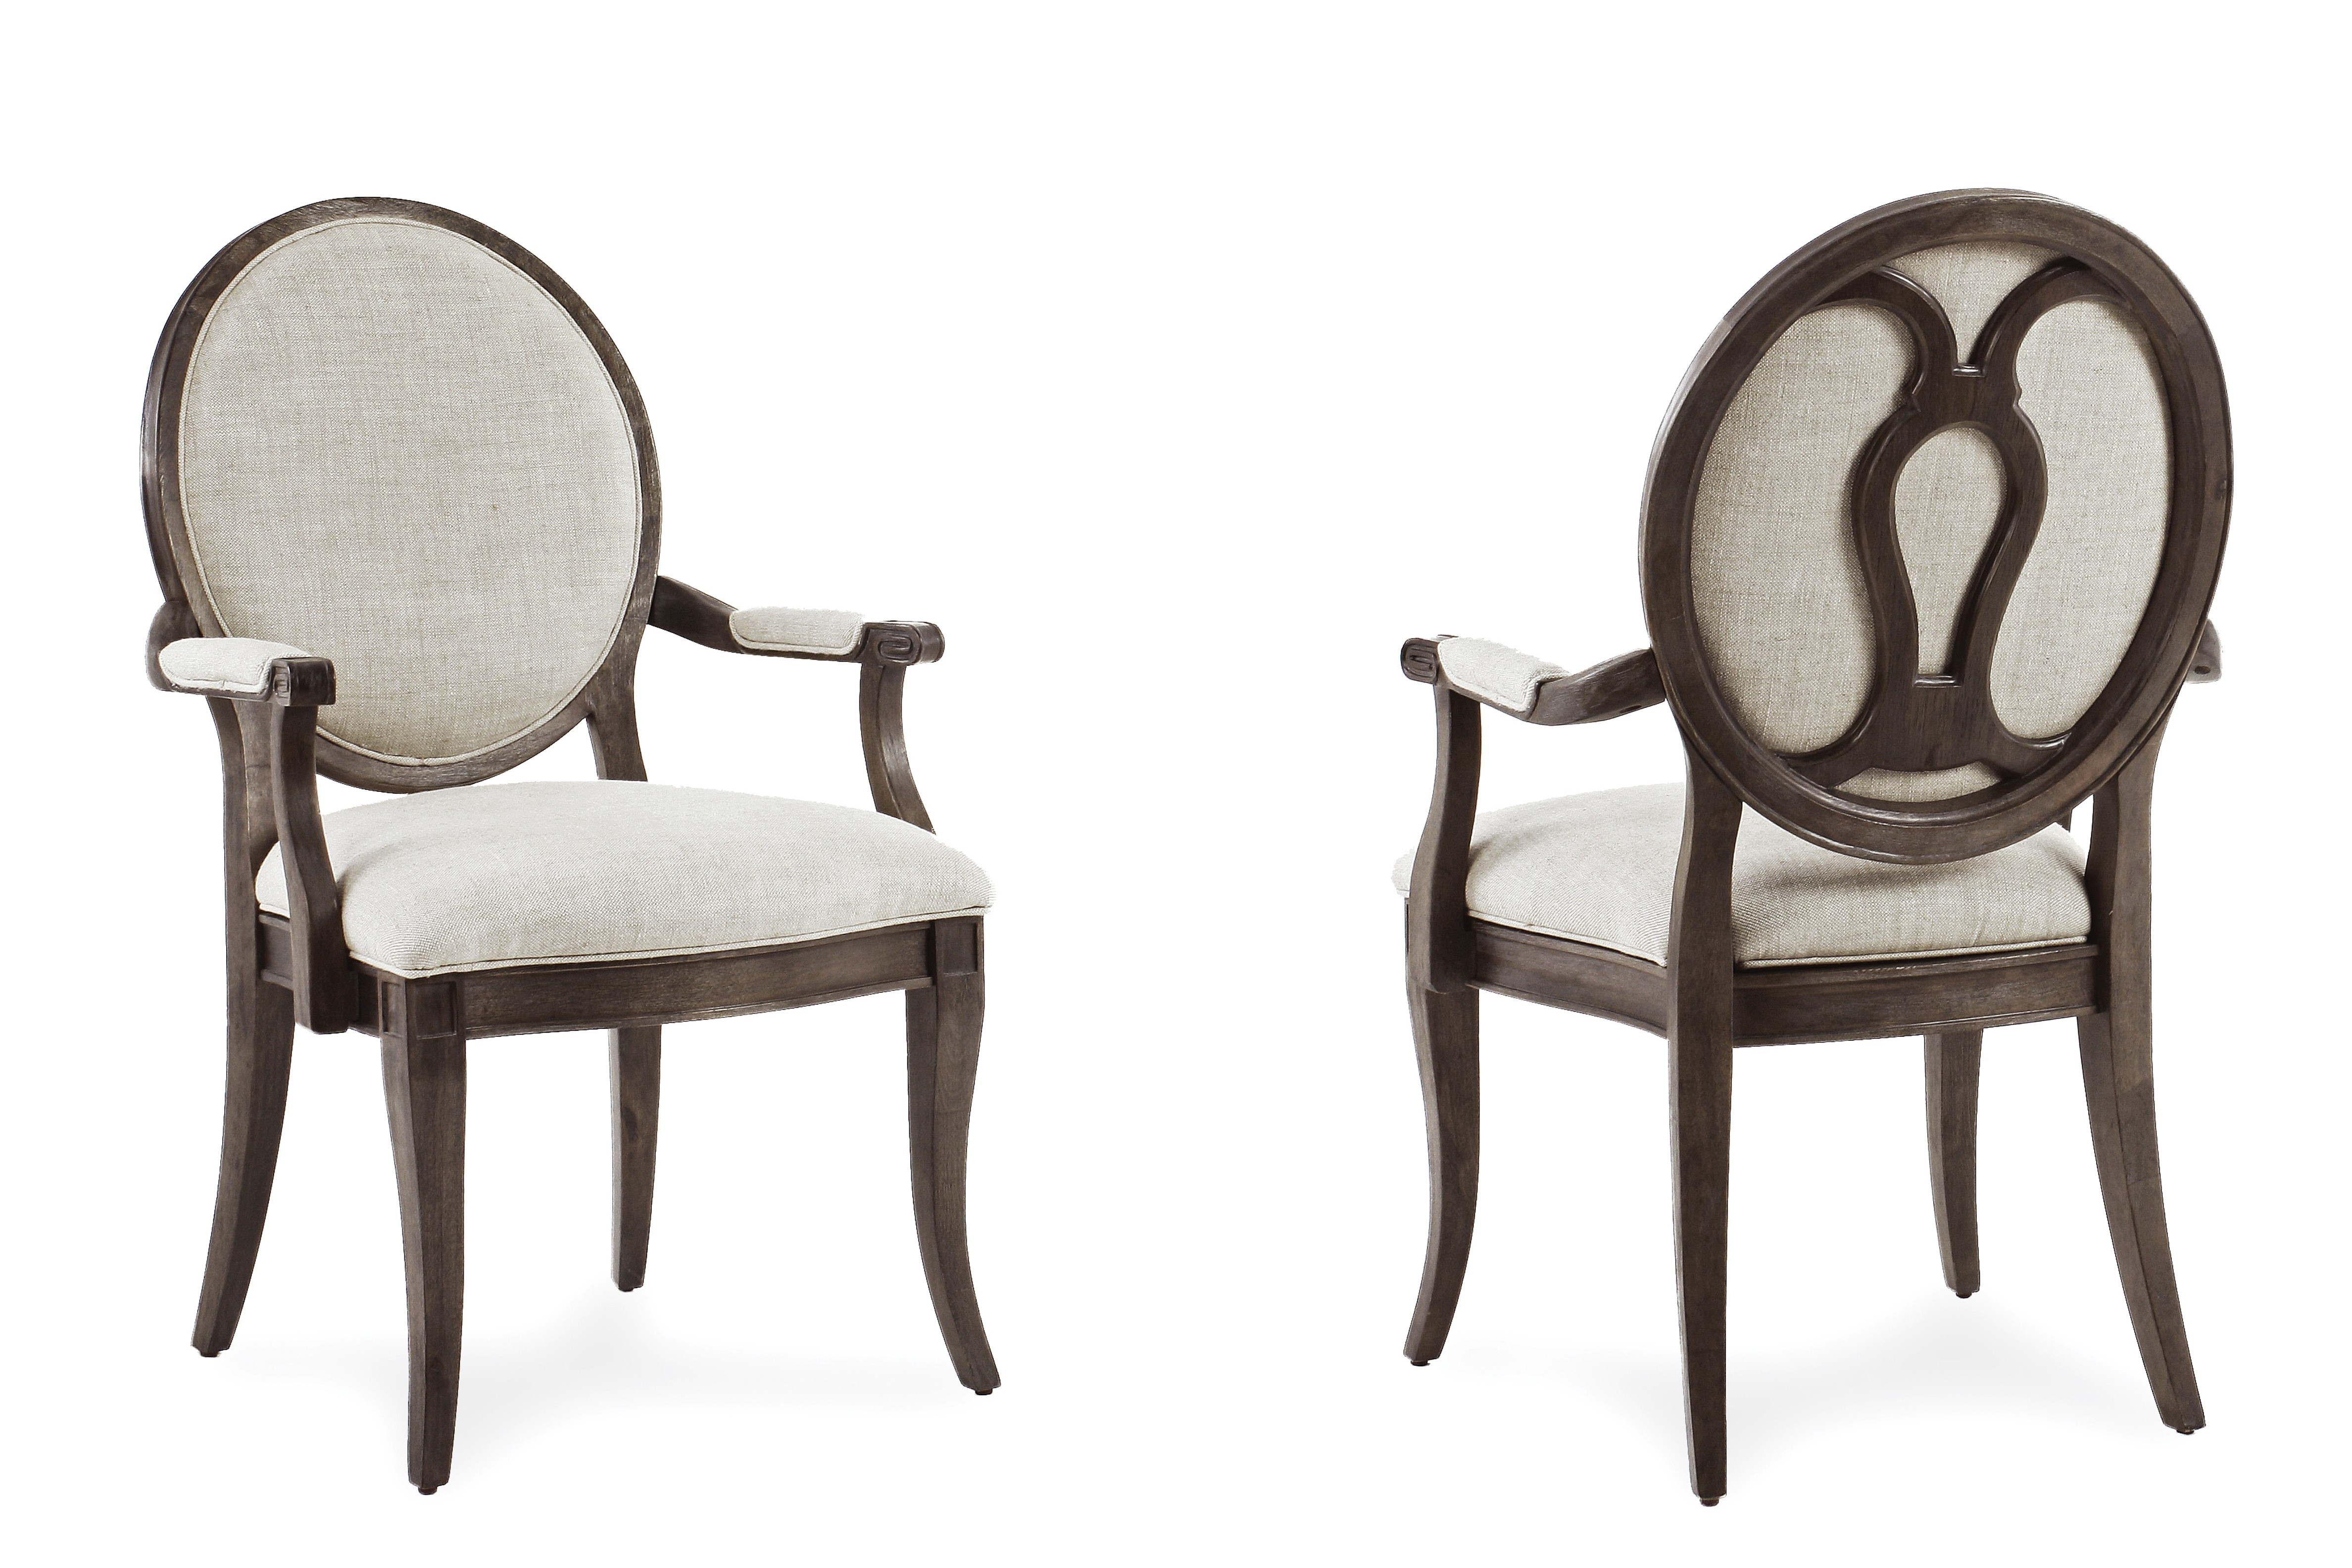 Oval Back Chair Saint Germain Oval Back Side Chair